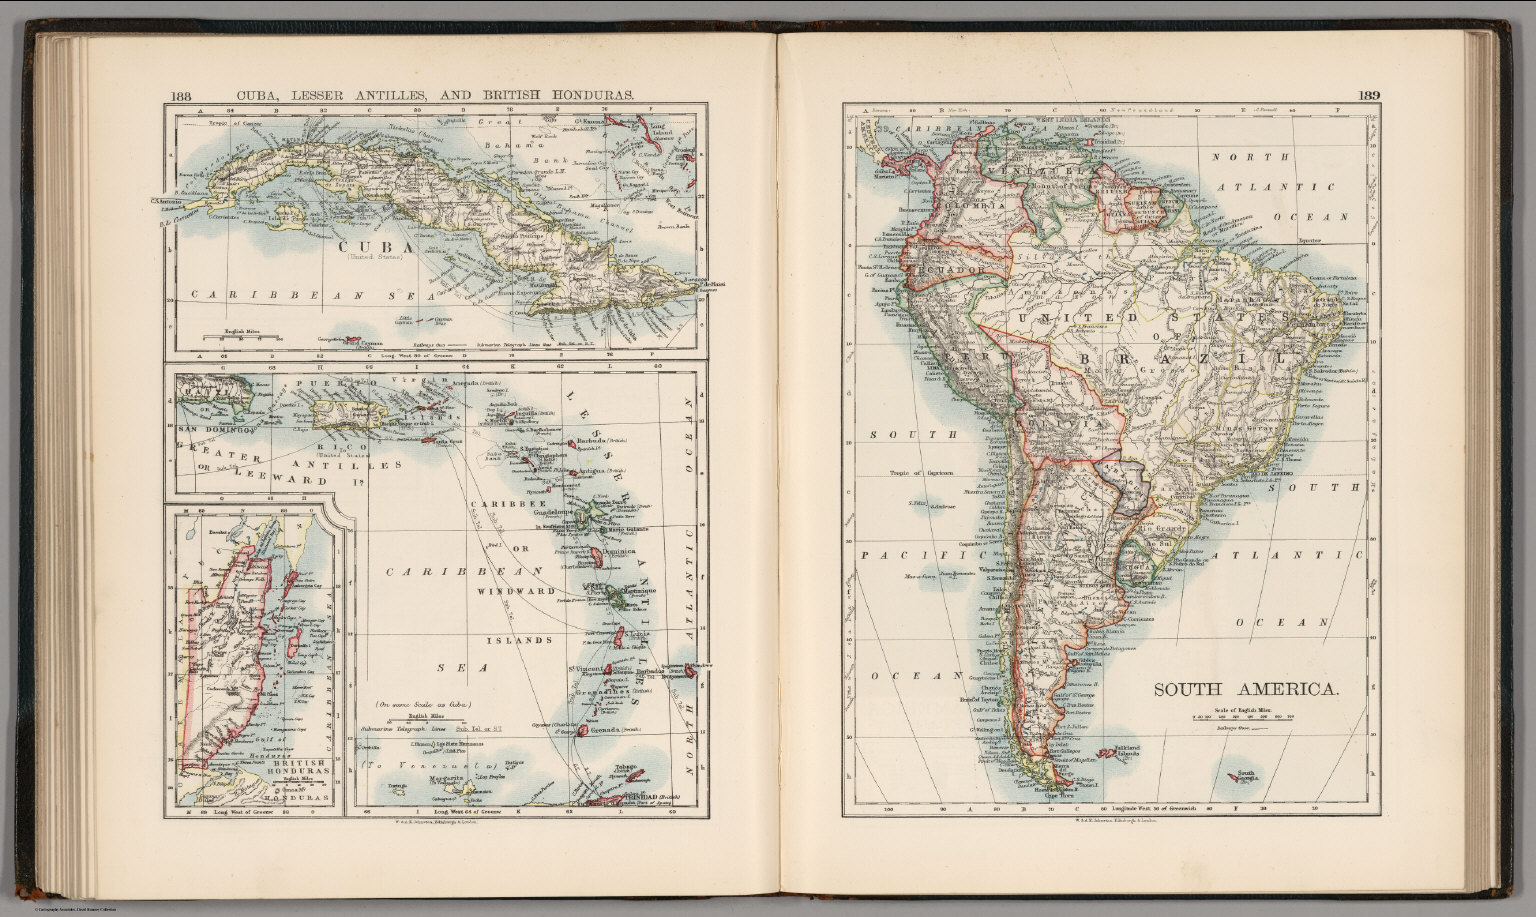 Cuba lesser antilles and british honduras south america cuba lesser antilles and british honduras south america gumiabroncs Gallery